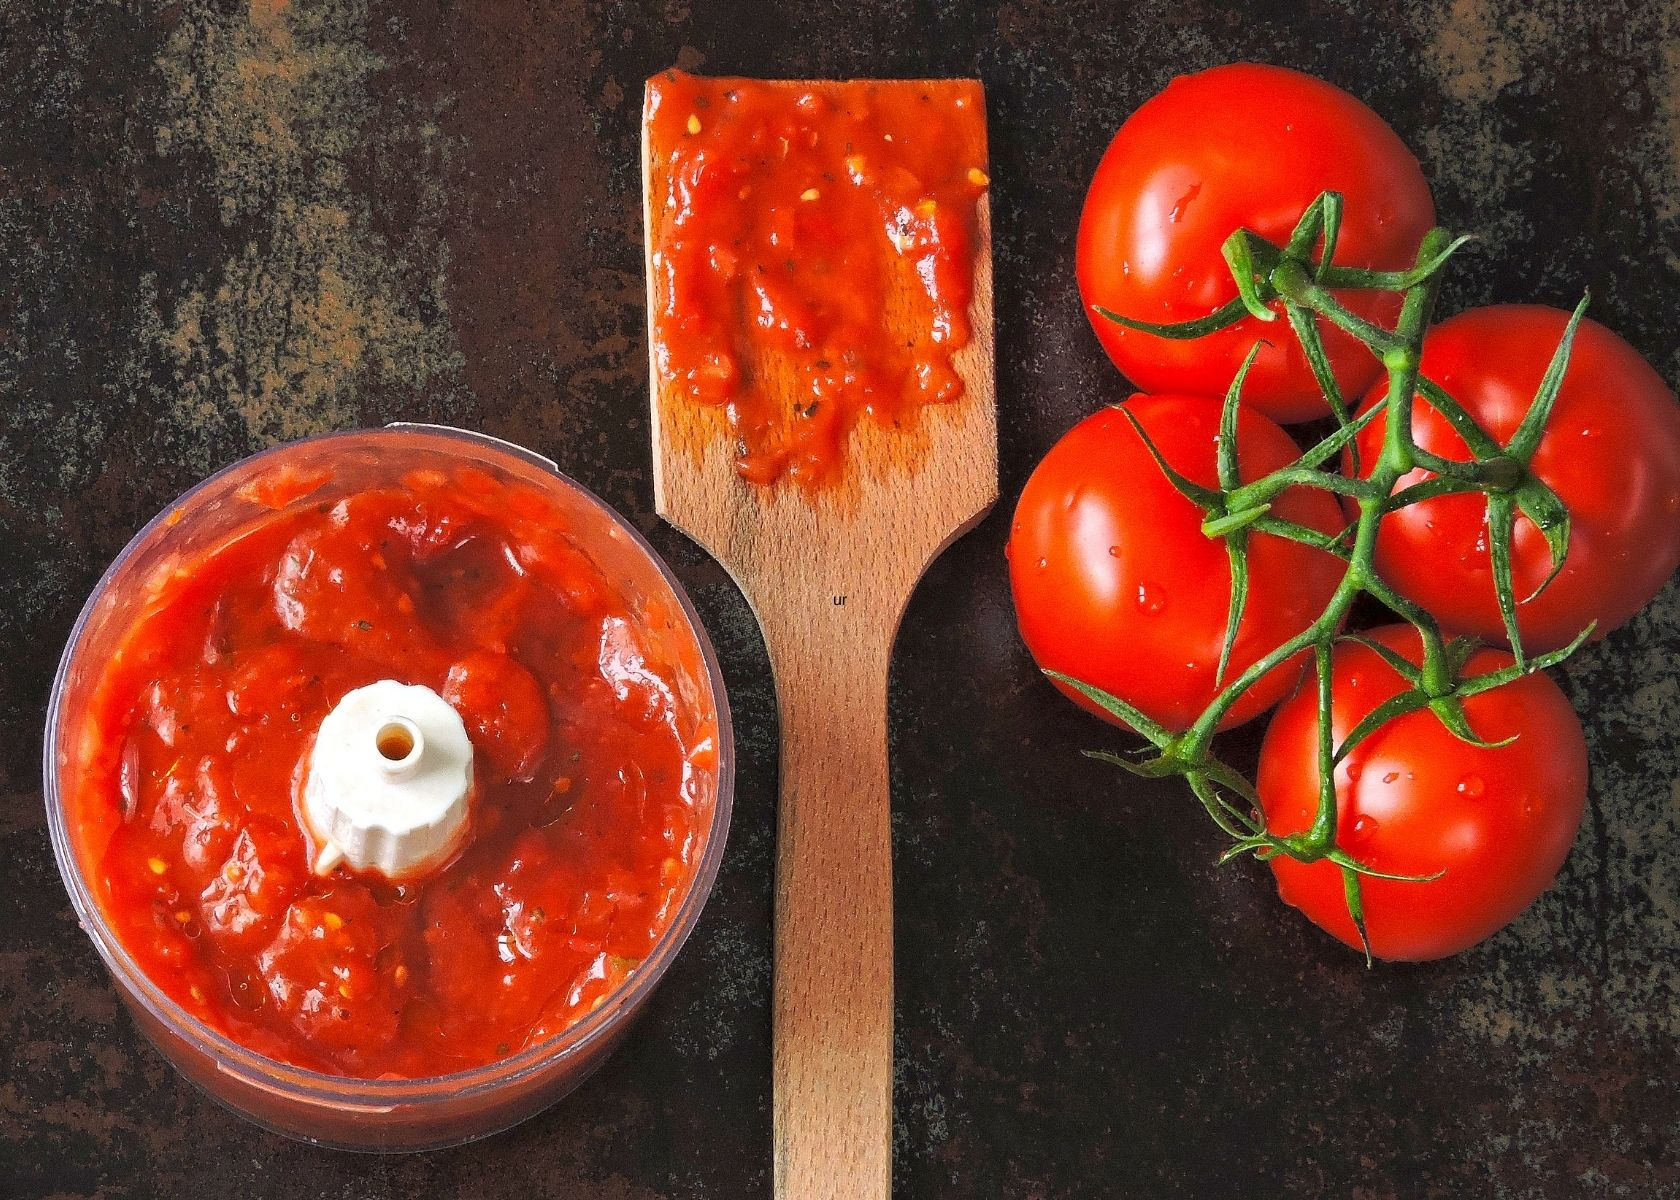 Homemade tomato puree in food processor next to fresh tomatoes and wooden spoon.